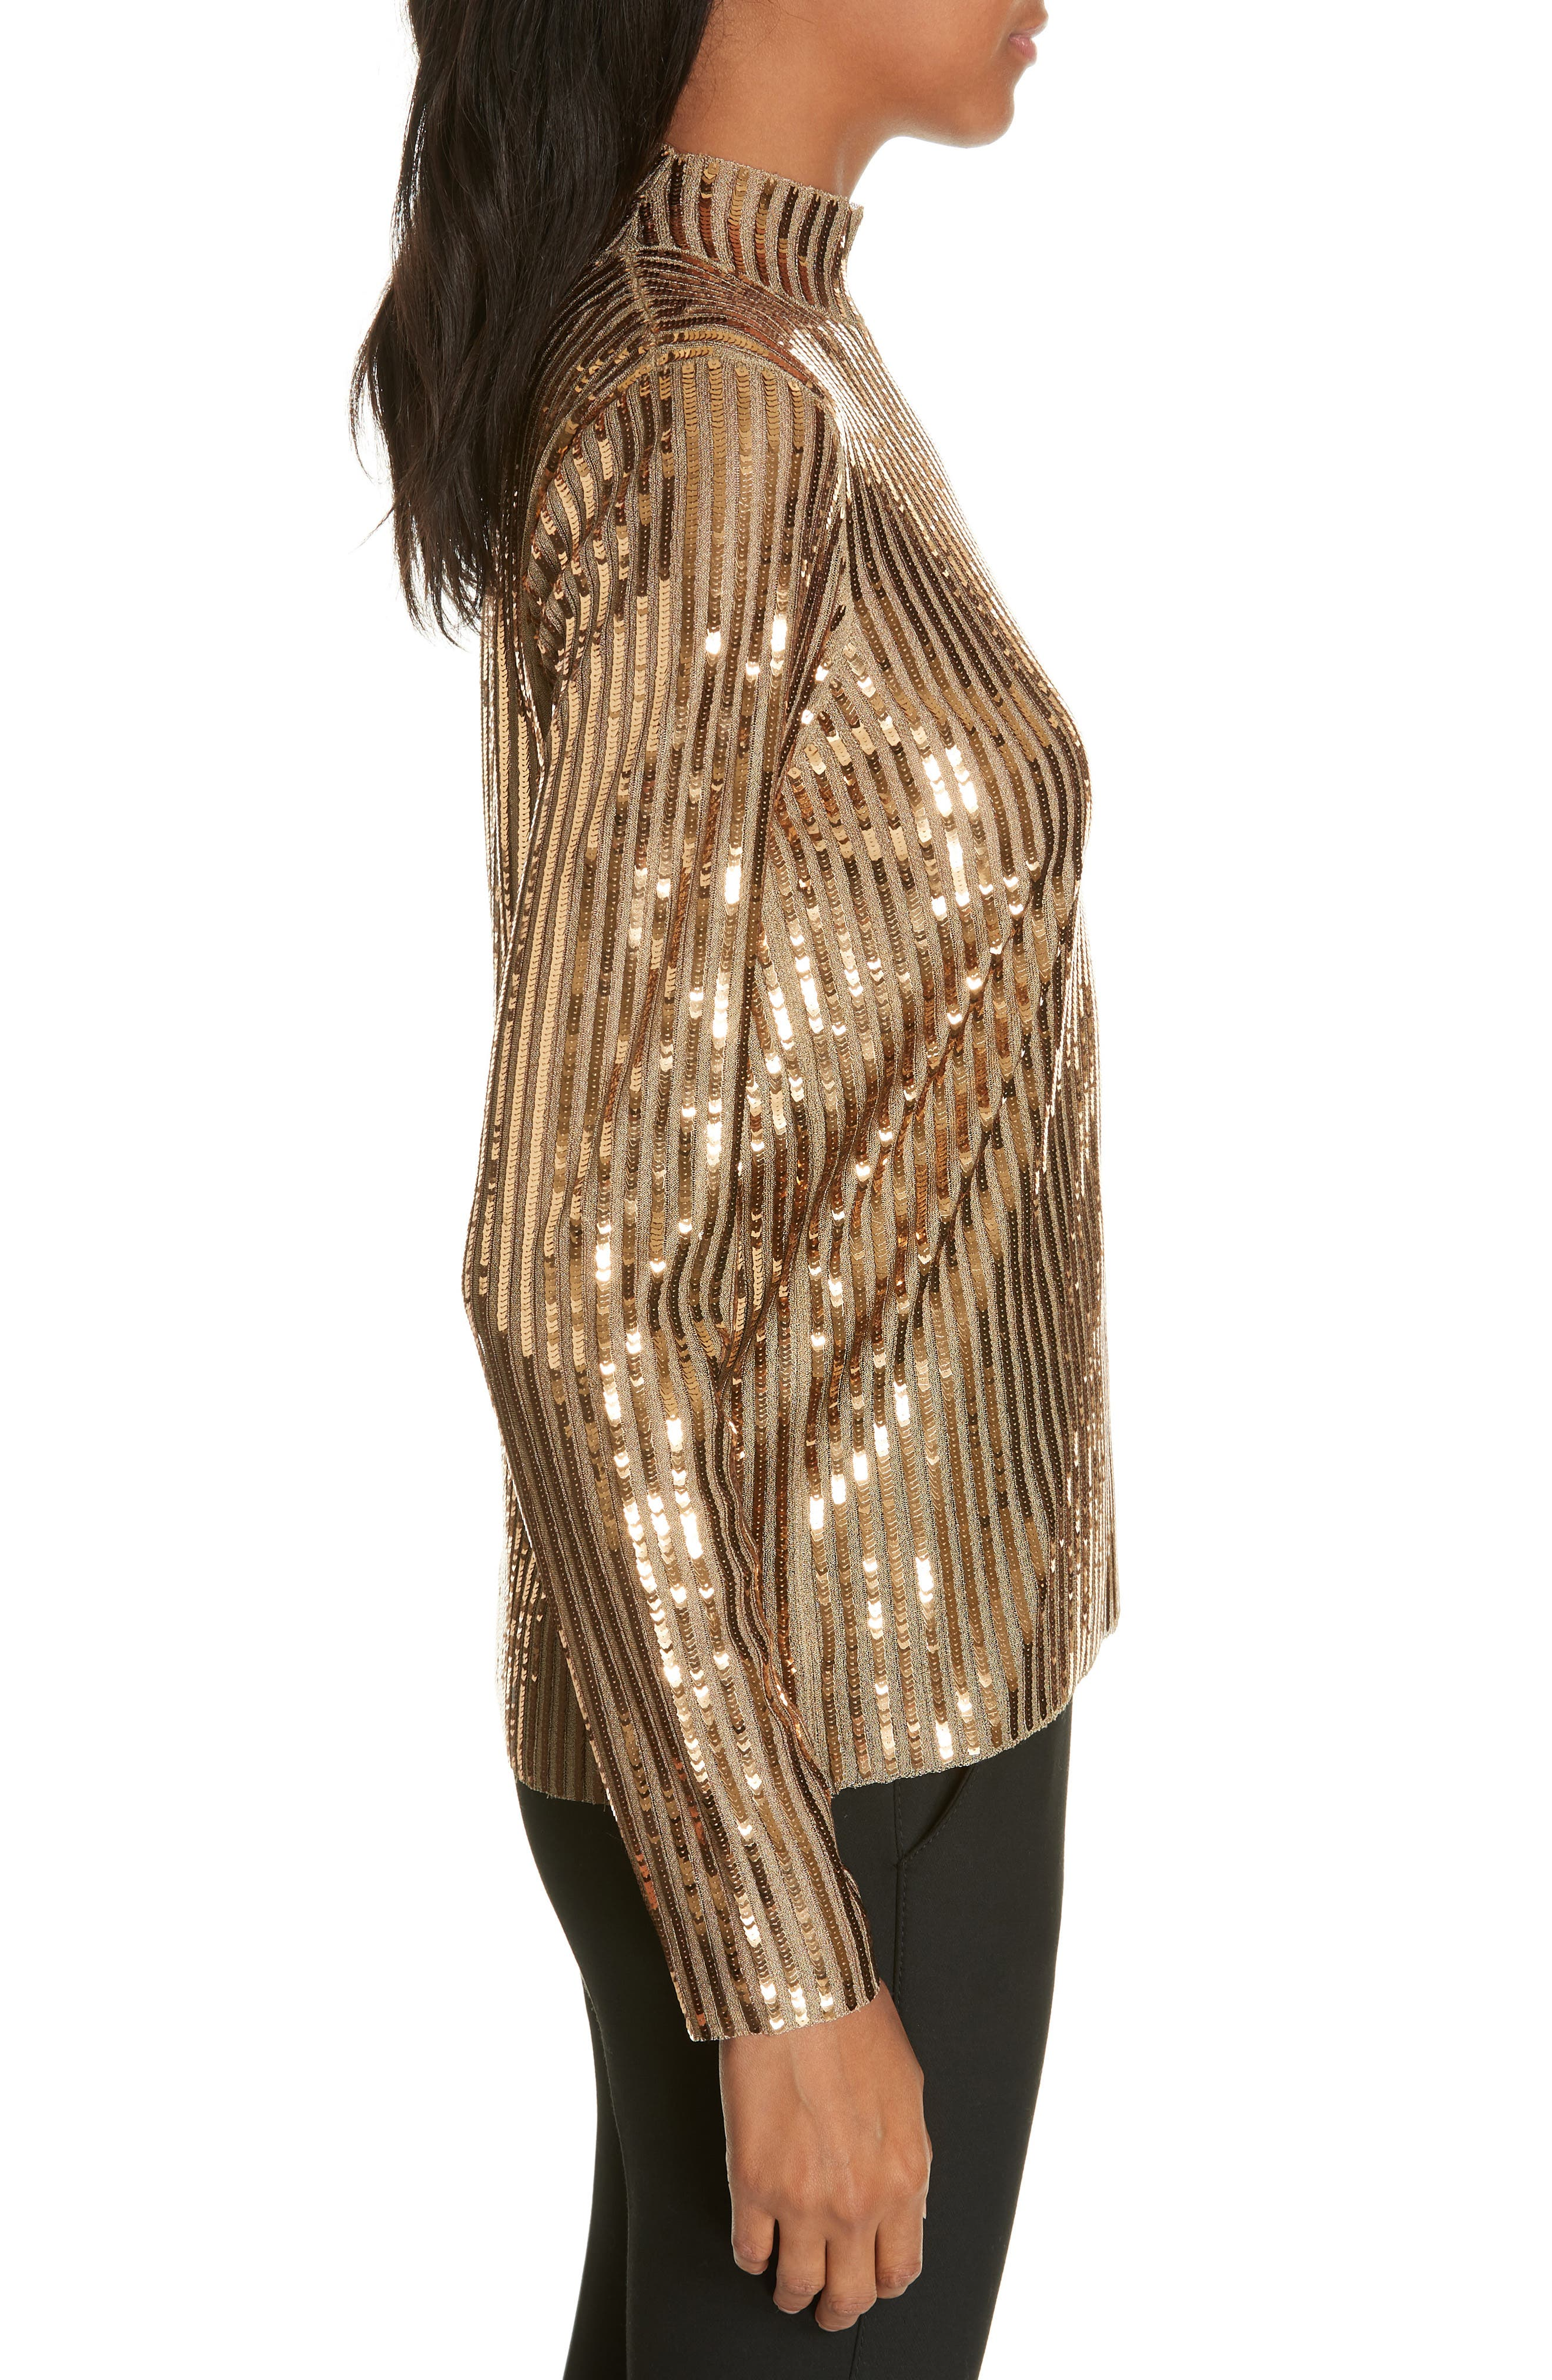 TANYA TAYLOR, Grace Gold Sequins Top, Alternate thumbnail 3, color, 712